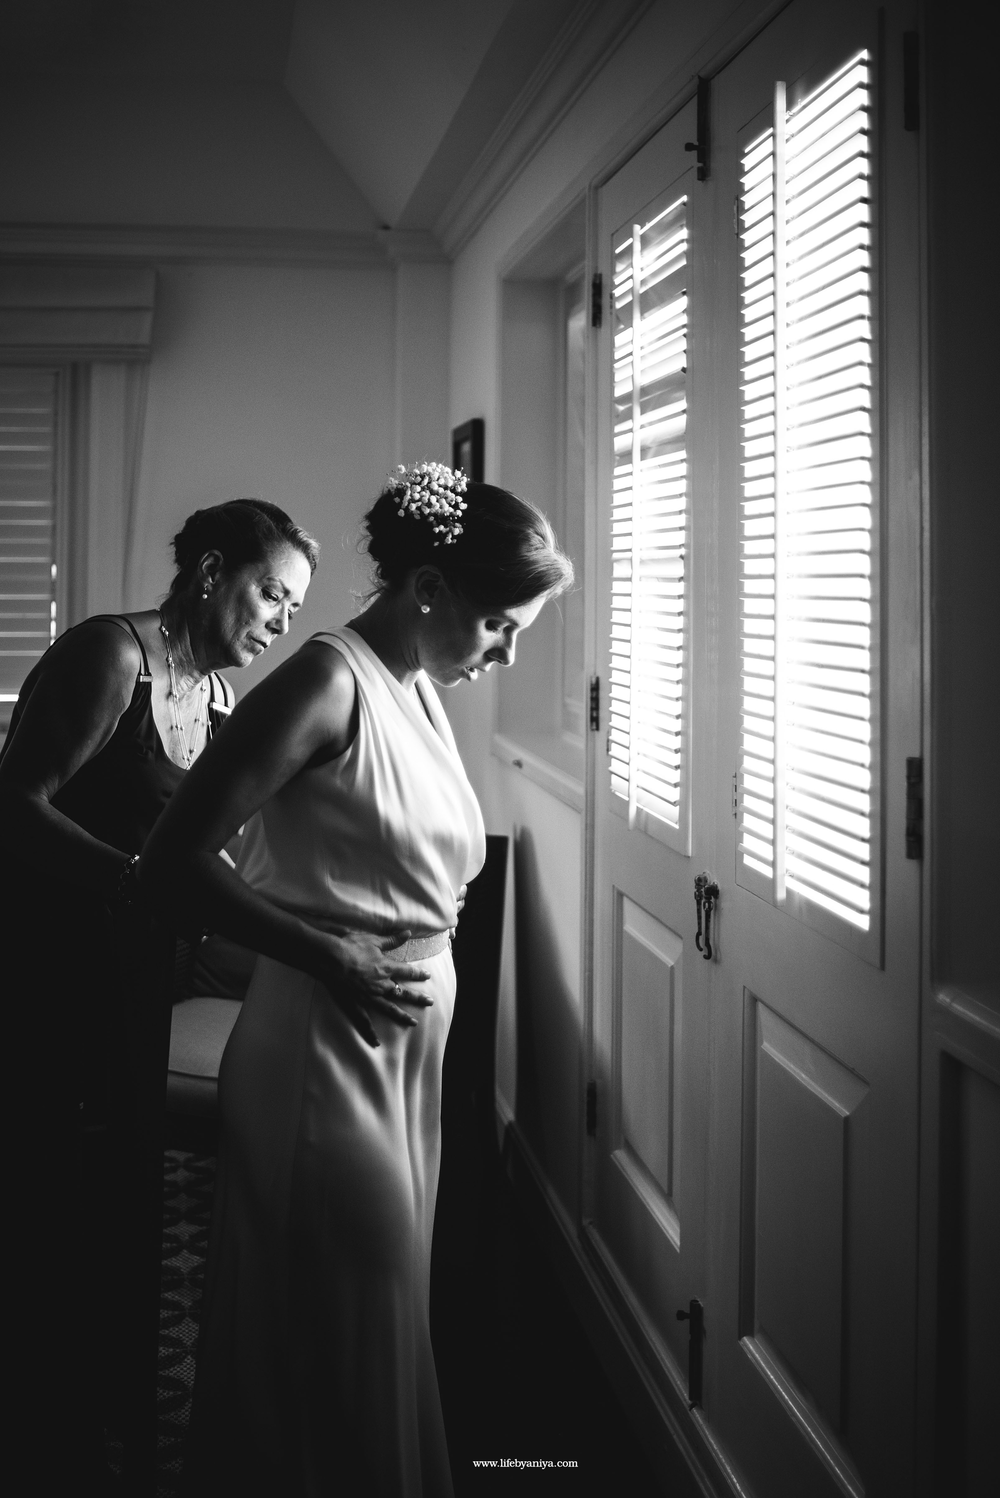 Life Photography By Aniya_Atlantis Hotel Barbados Wedding_Aniya Emtage_Wedding Photography07.png